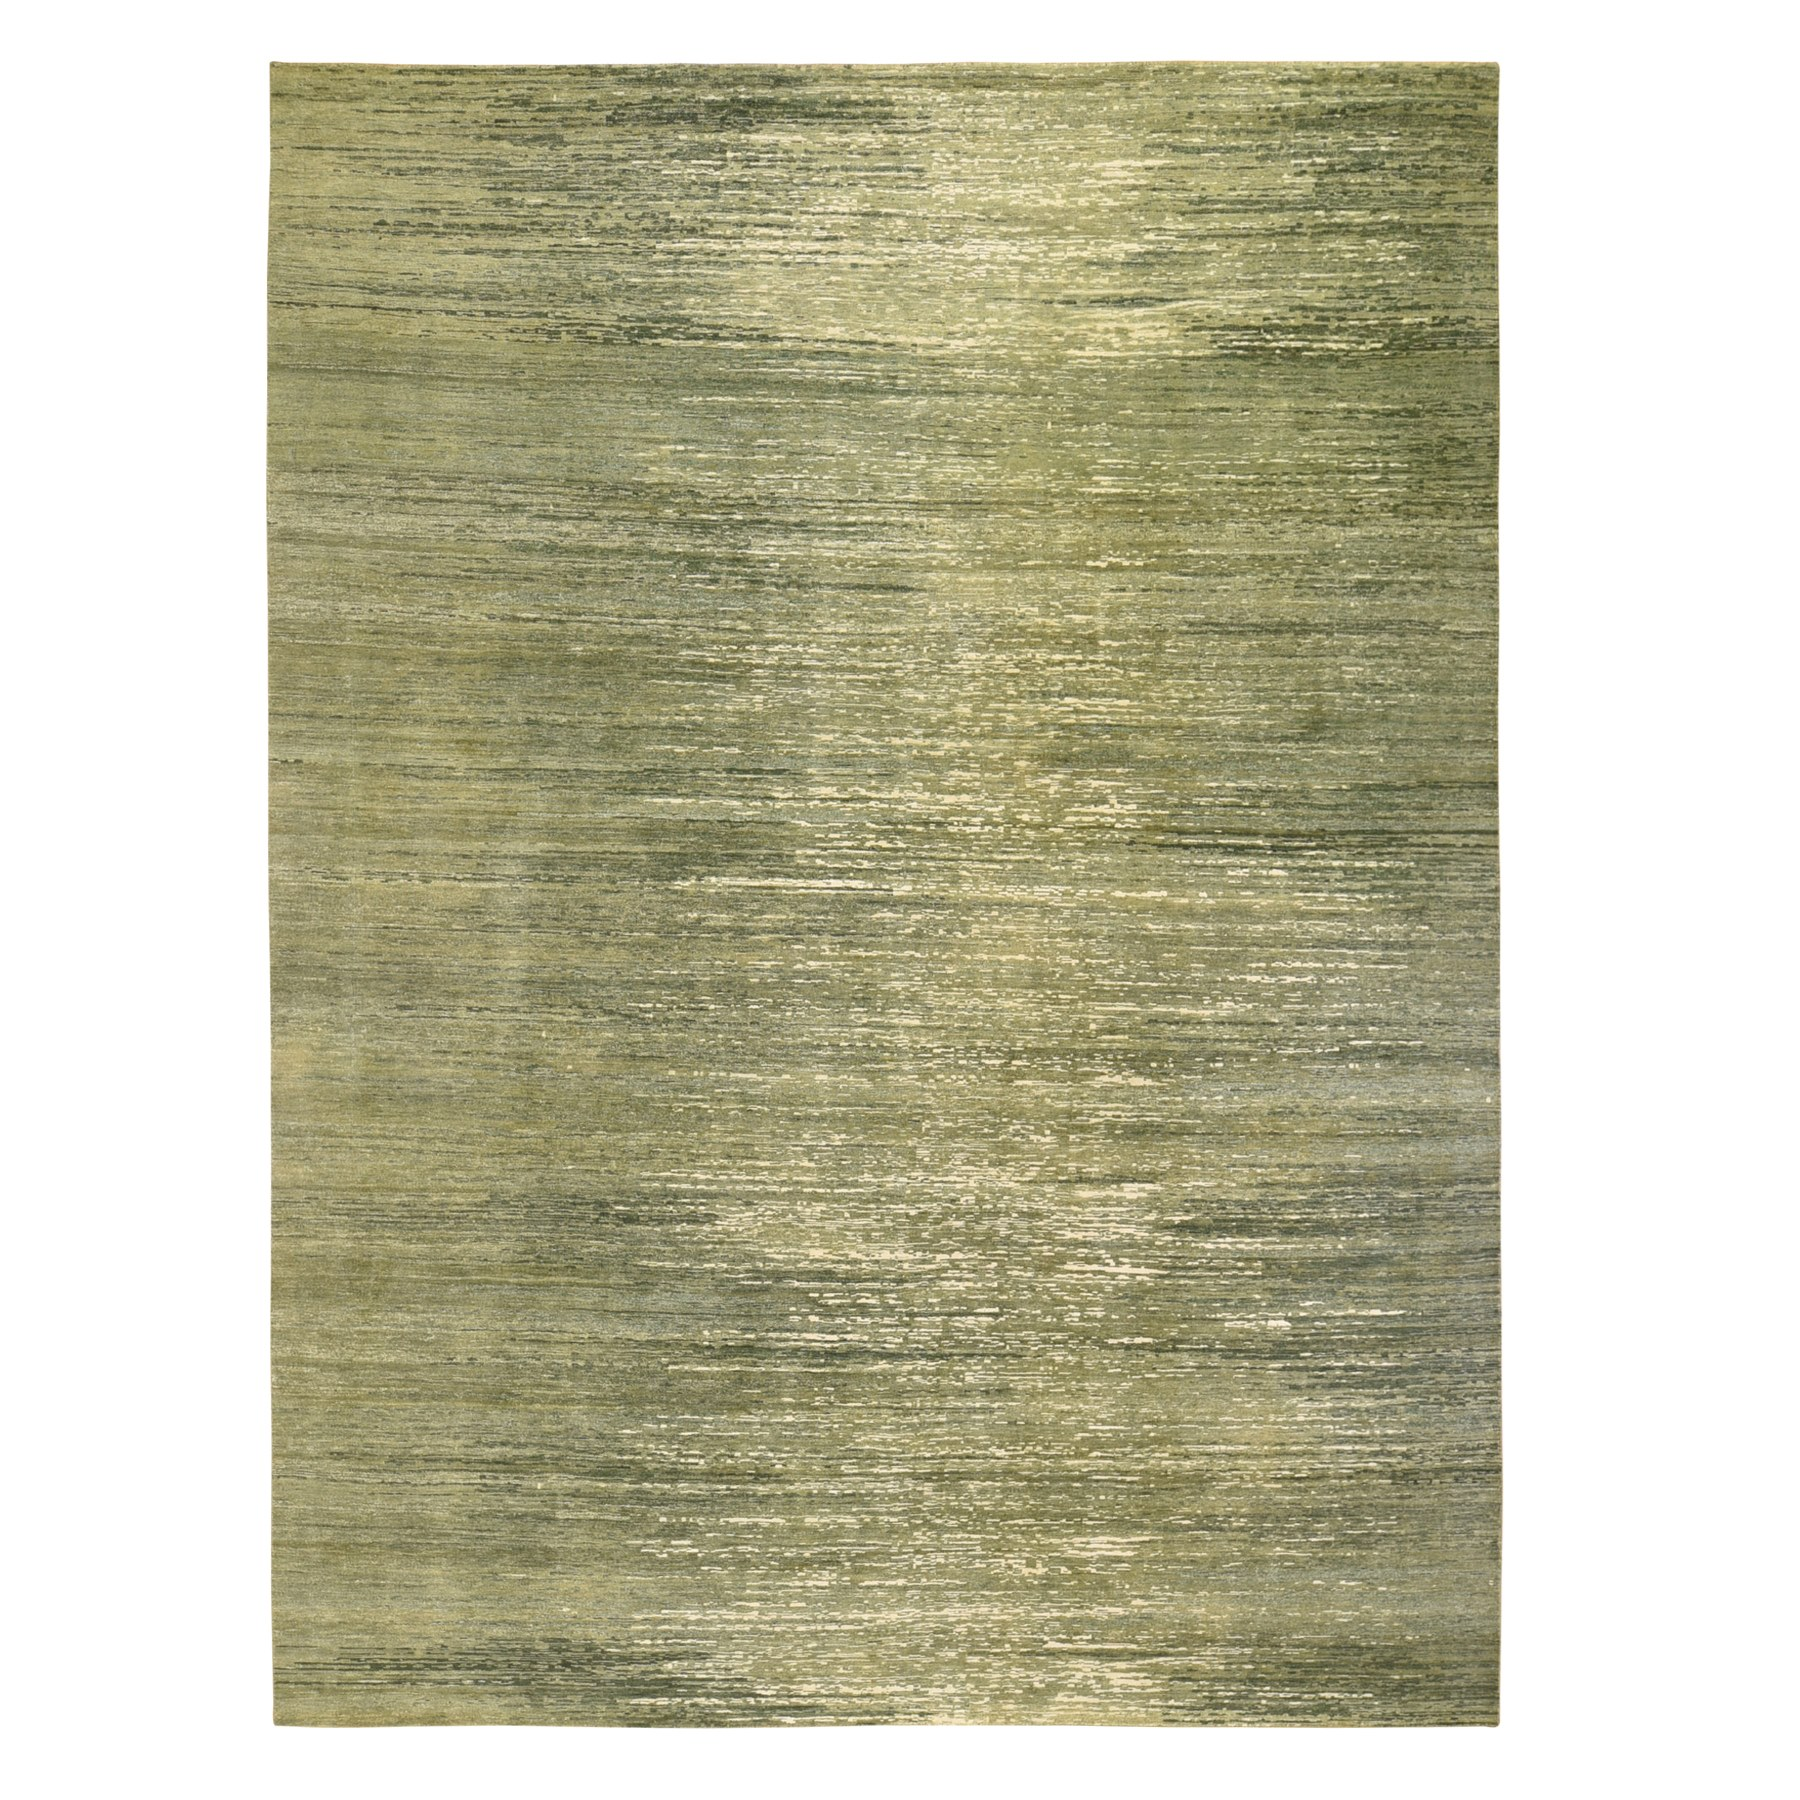 8'x11' Moss Green Color Shades Paint Strike Design Sheared Low Pure Wool Hand Woven Oriental Rug